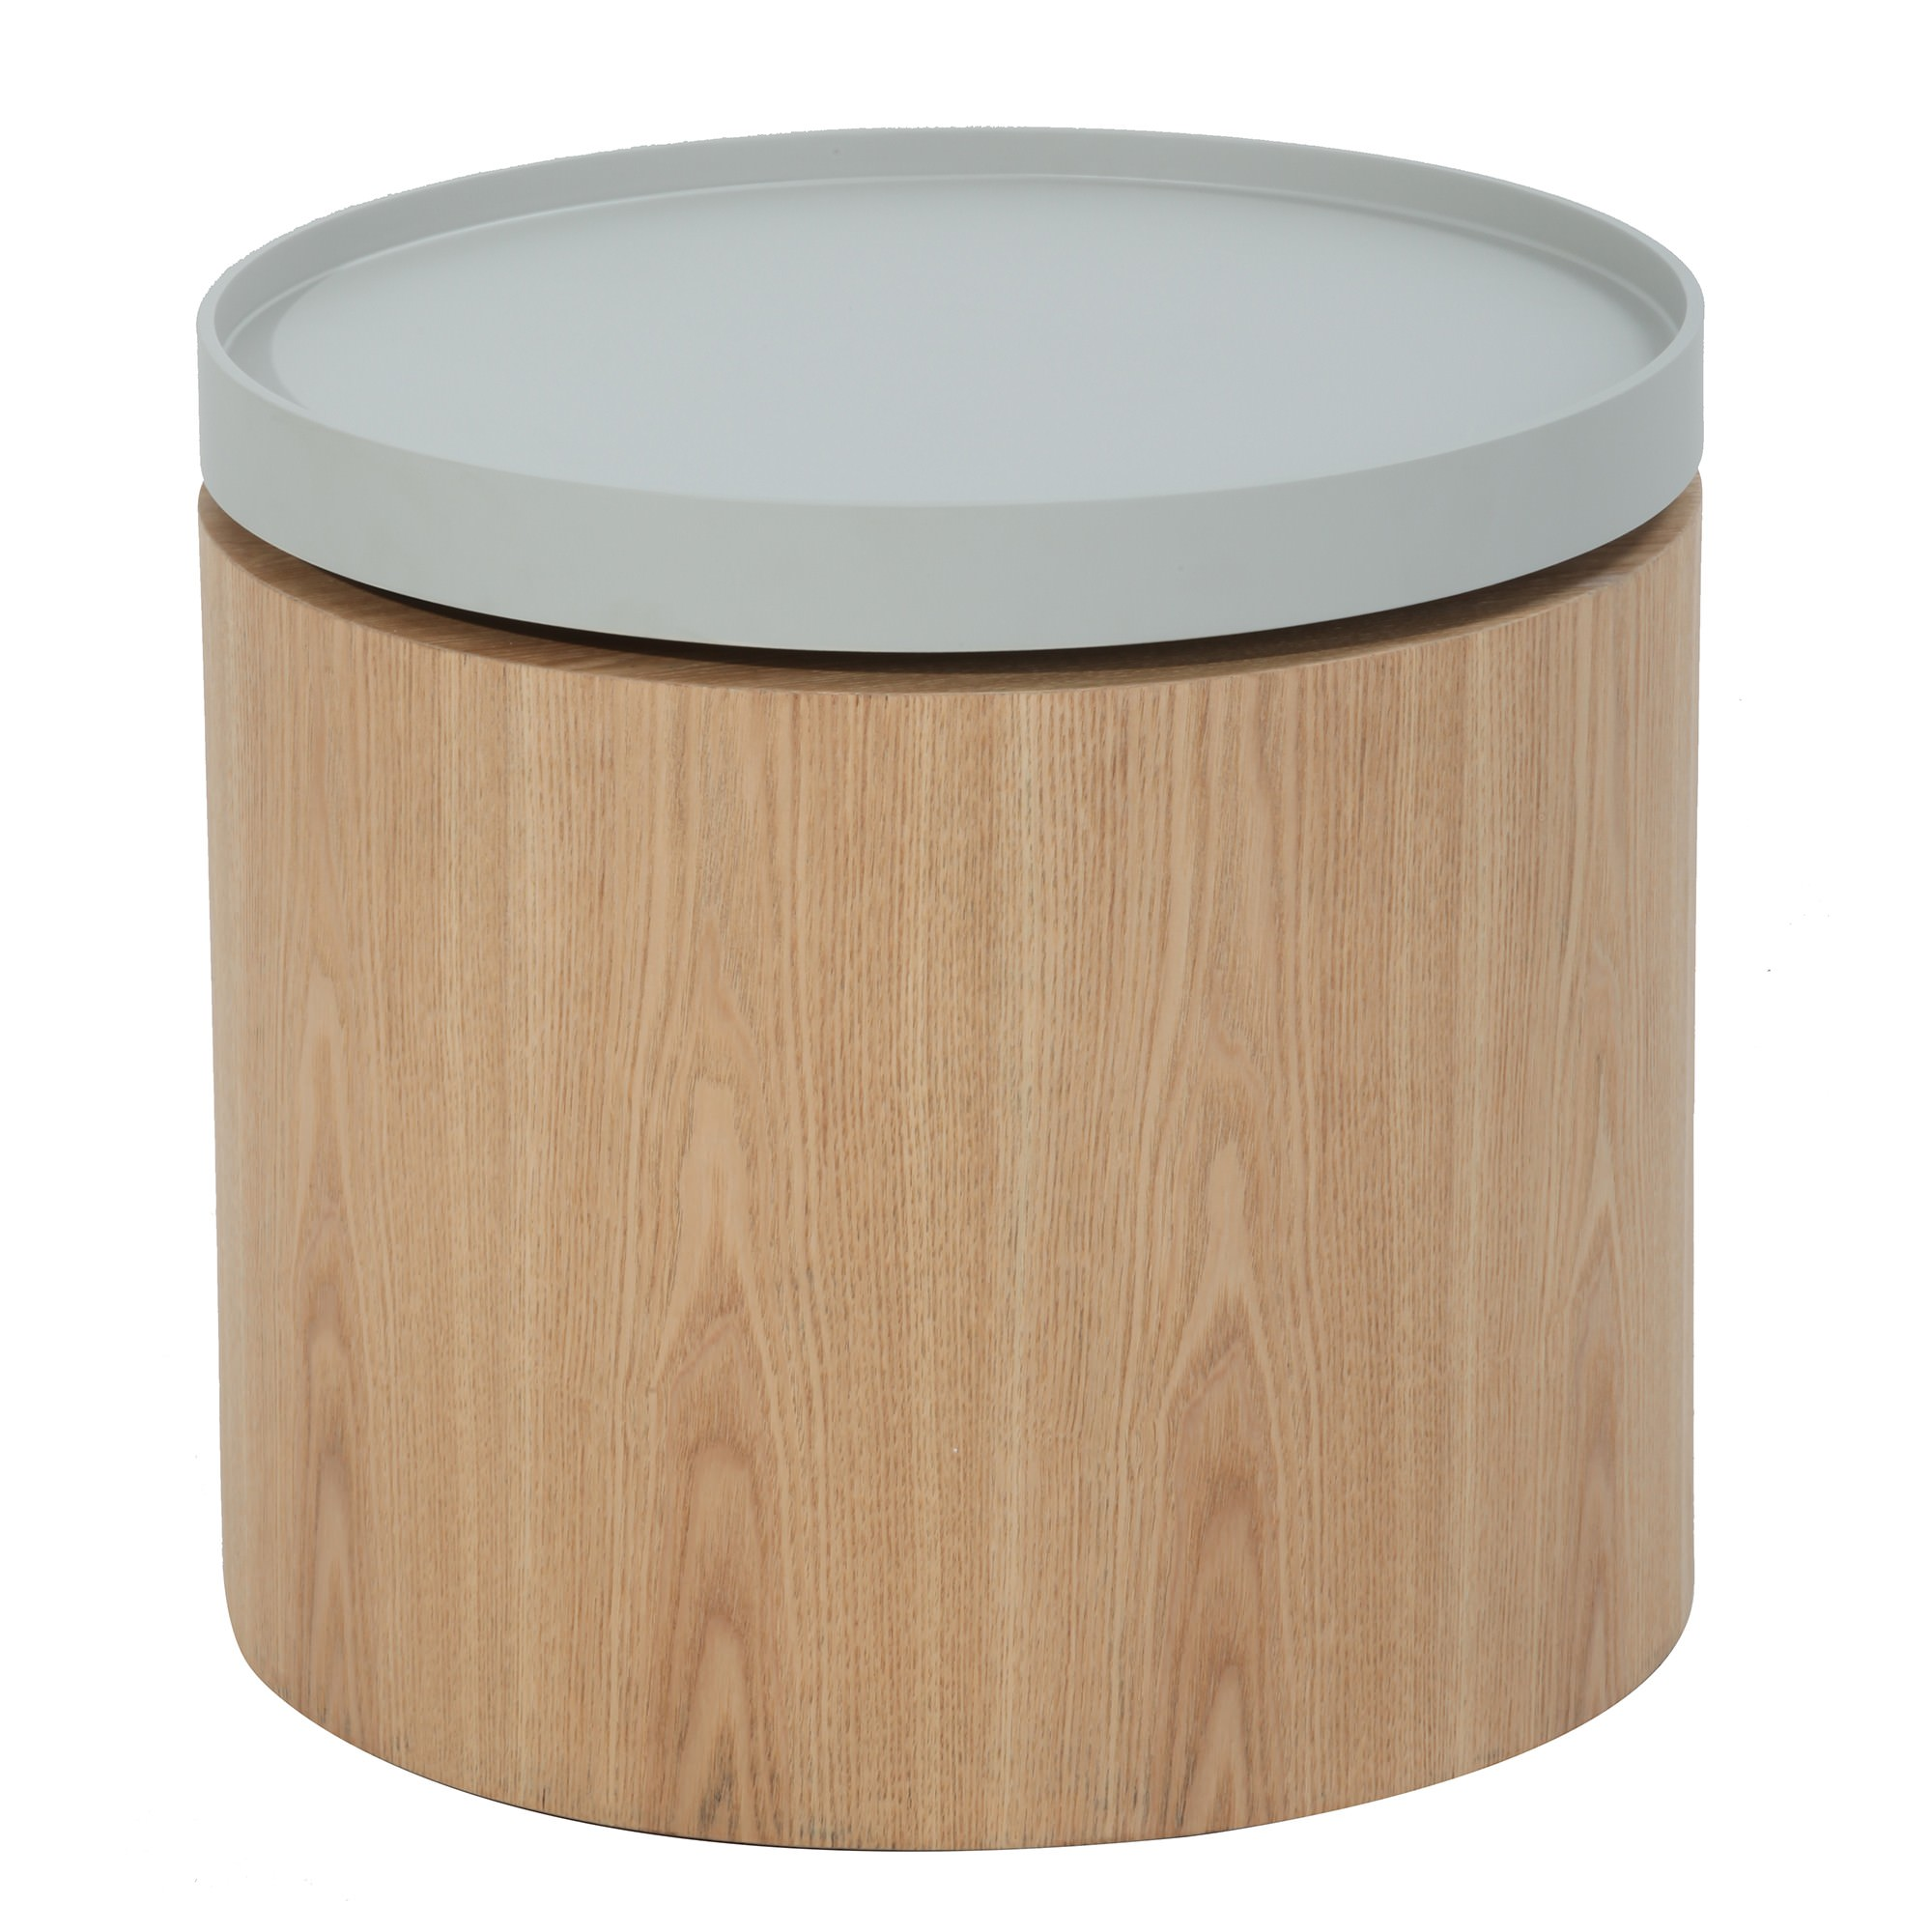 Carden Wooden Tray Top Side Table Grey Tray Ash Ven